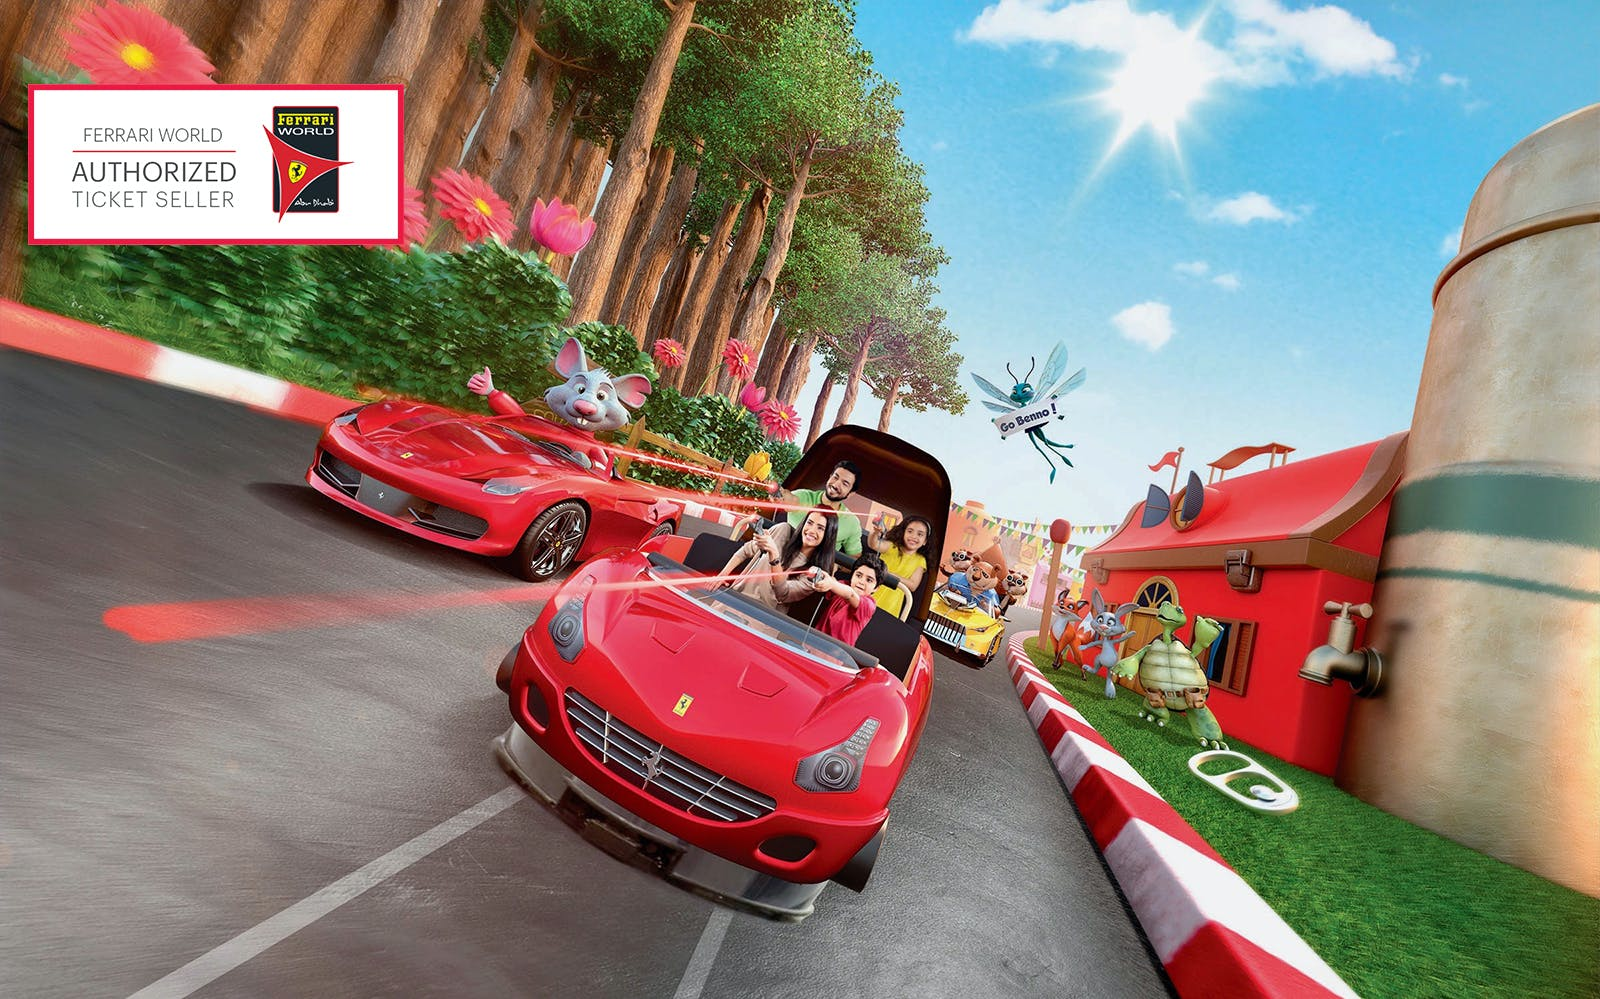 ferrari world tickets with all ride quick pass-3